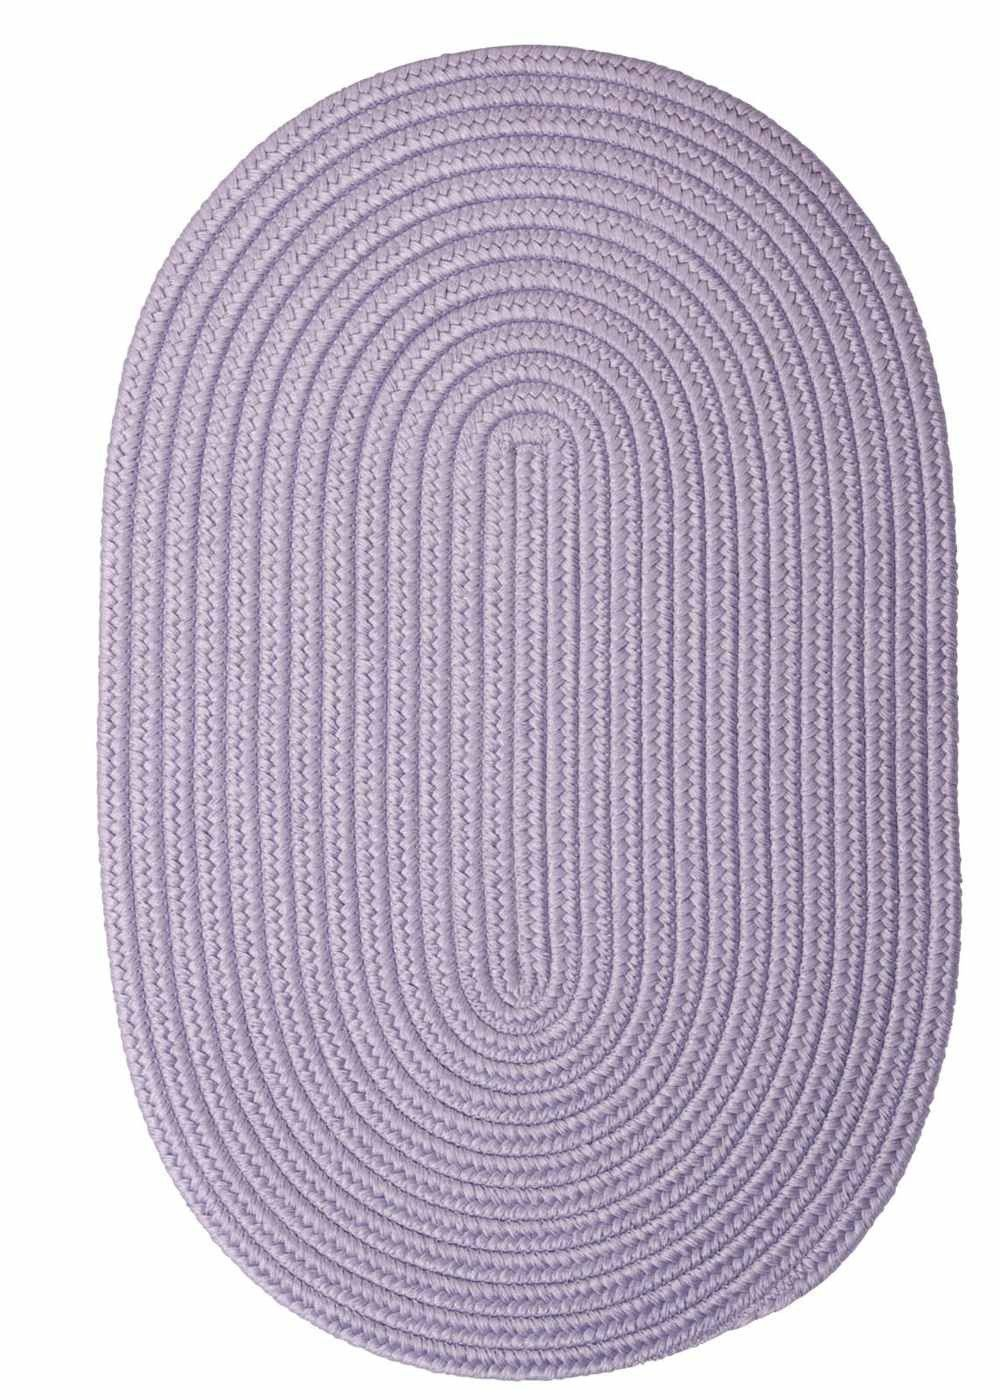 Purple Oval Braided Rug Indoor Outdoor Made In Usa